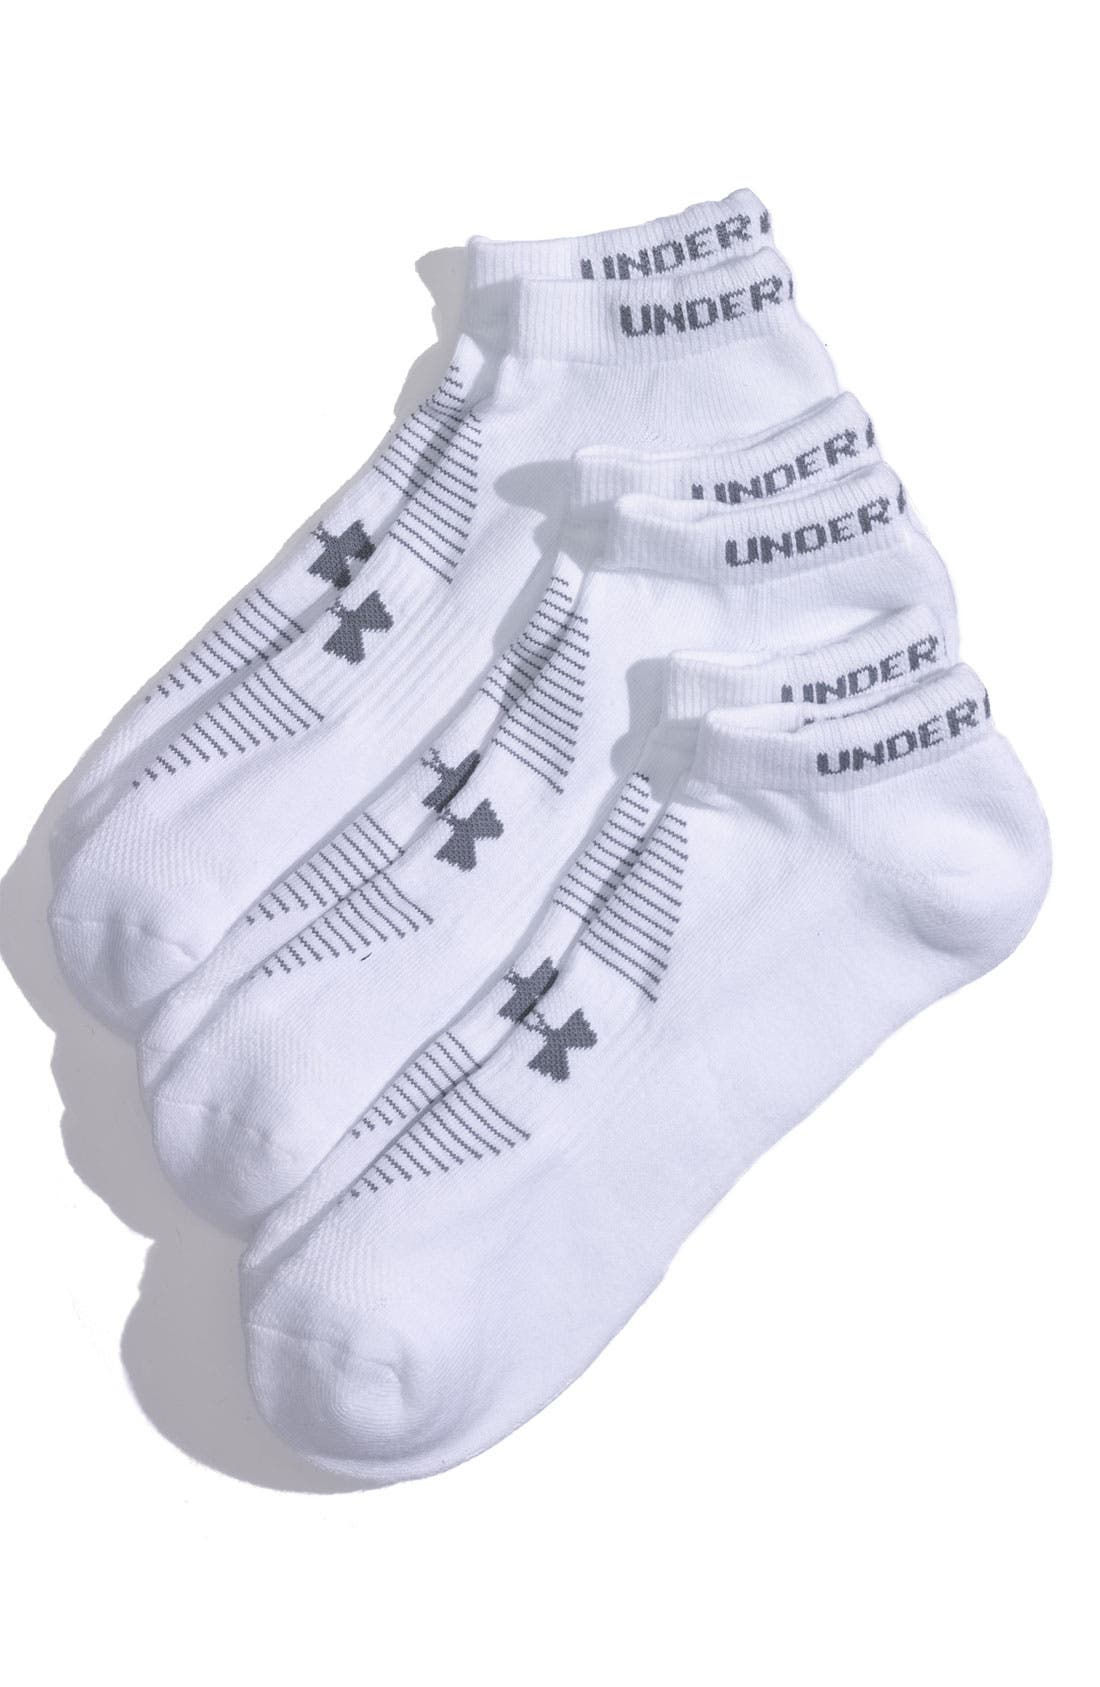 Alternate Image 1 Selected - Under Armour 'Charged' HeatGear® No-Show Socks (3-Pack) (Men)